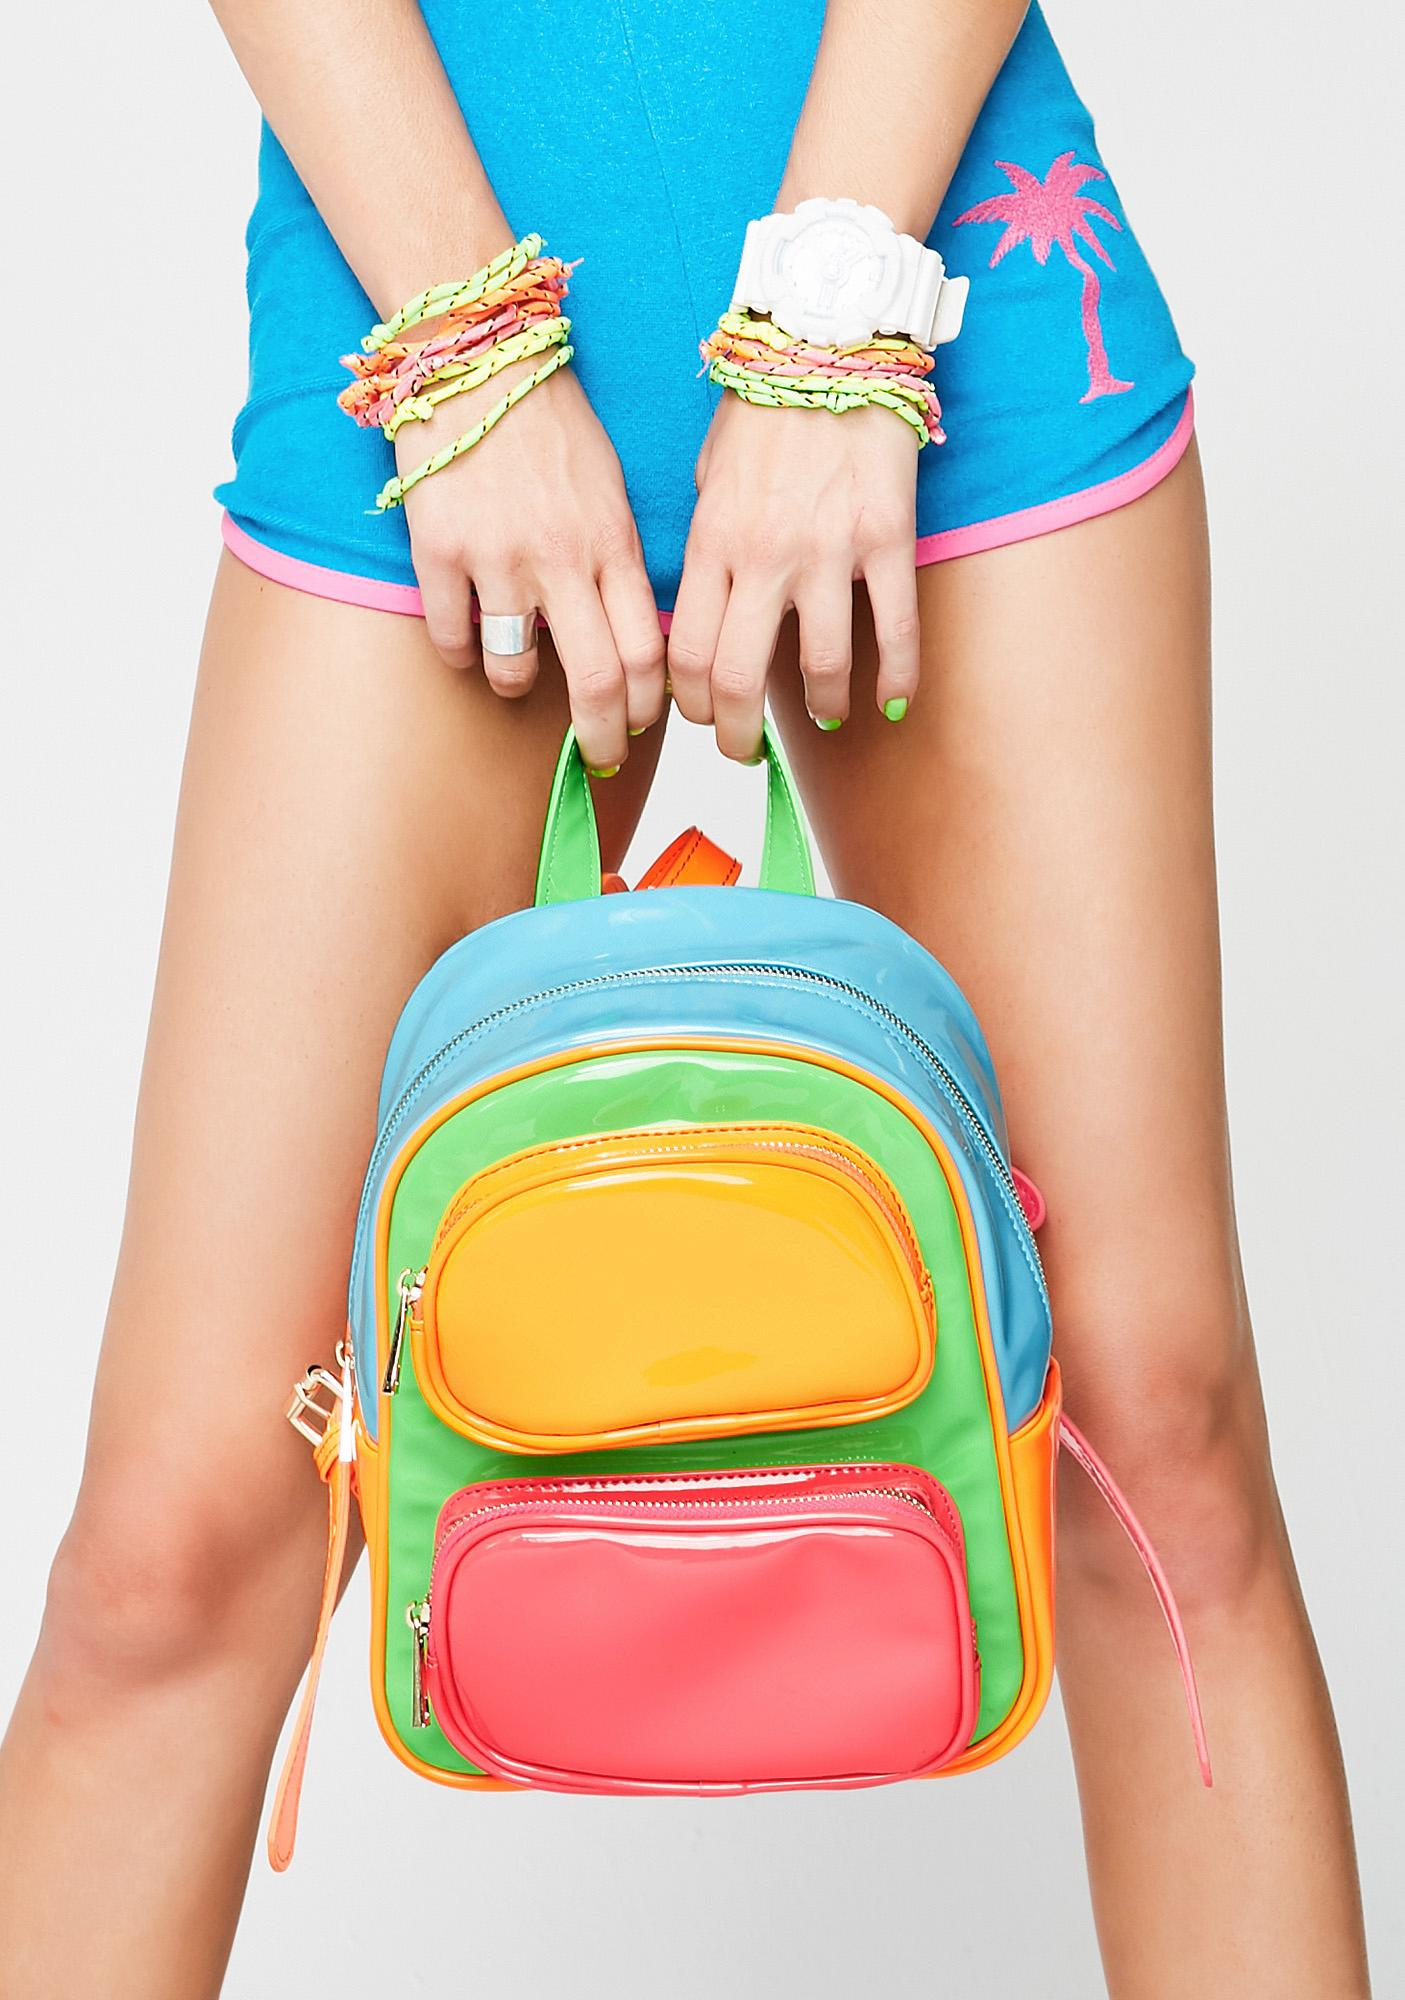 Current Mood Catch Some Rays Mini Backpack